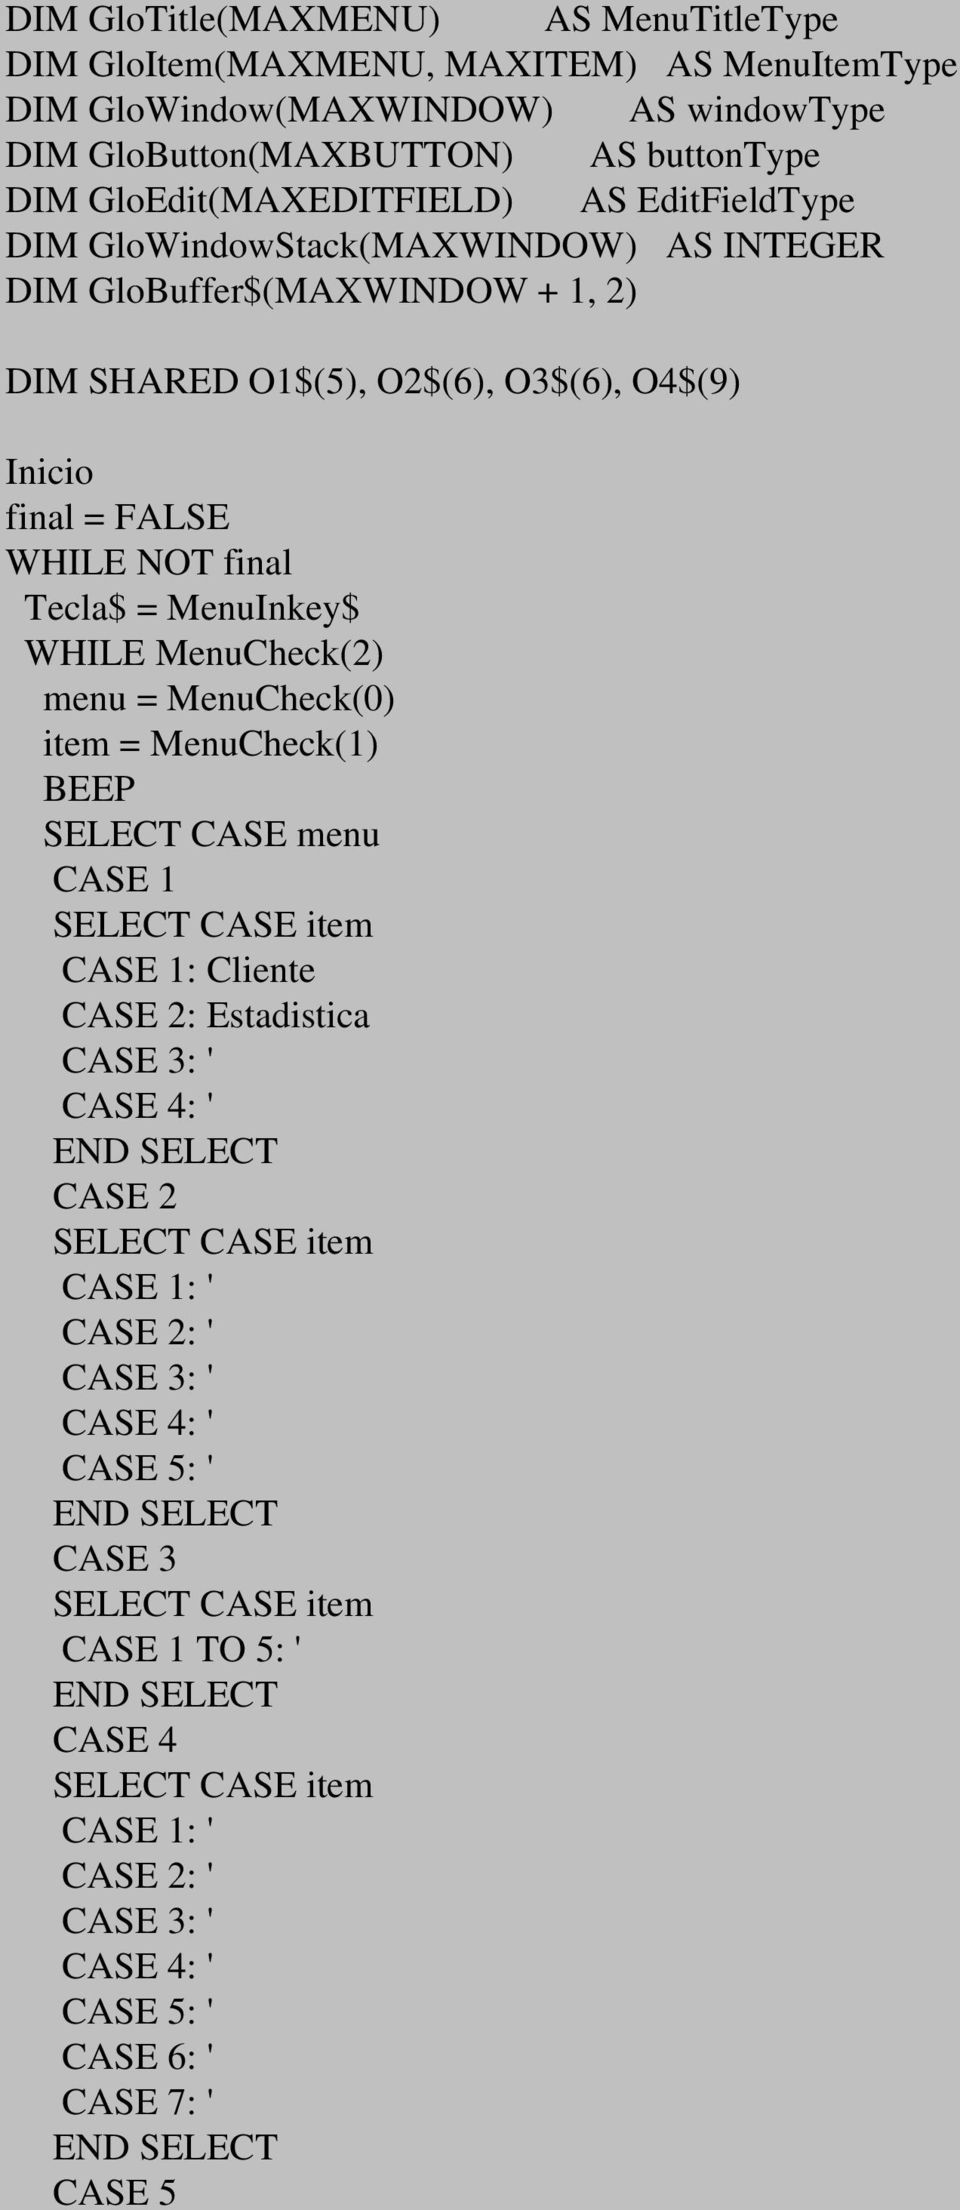 MenuInkey$ WHILE MenuCheck(2) menu = MenuCheck(0) item = MenuCheck(1) BEEP SELECT CASE menu CASE 1 SELECT CASE item CASE 1: Cliente CASE 2: Estadistica CASE 3: ' CASE 4: ' CASE 2 SELECT